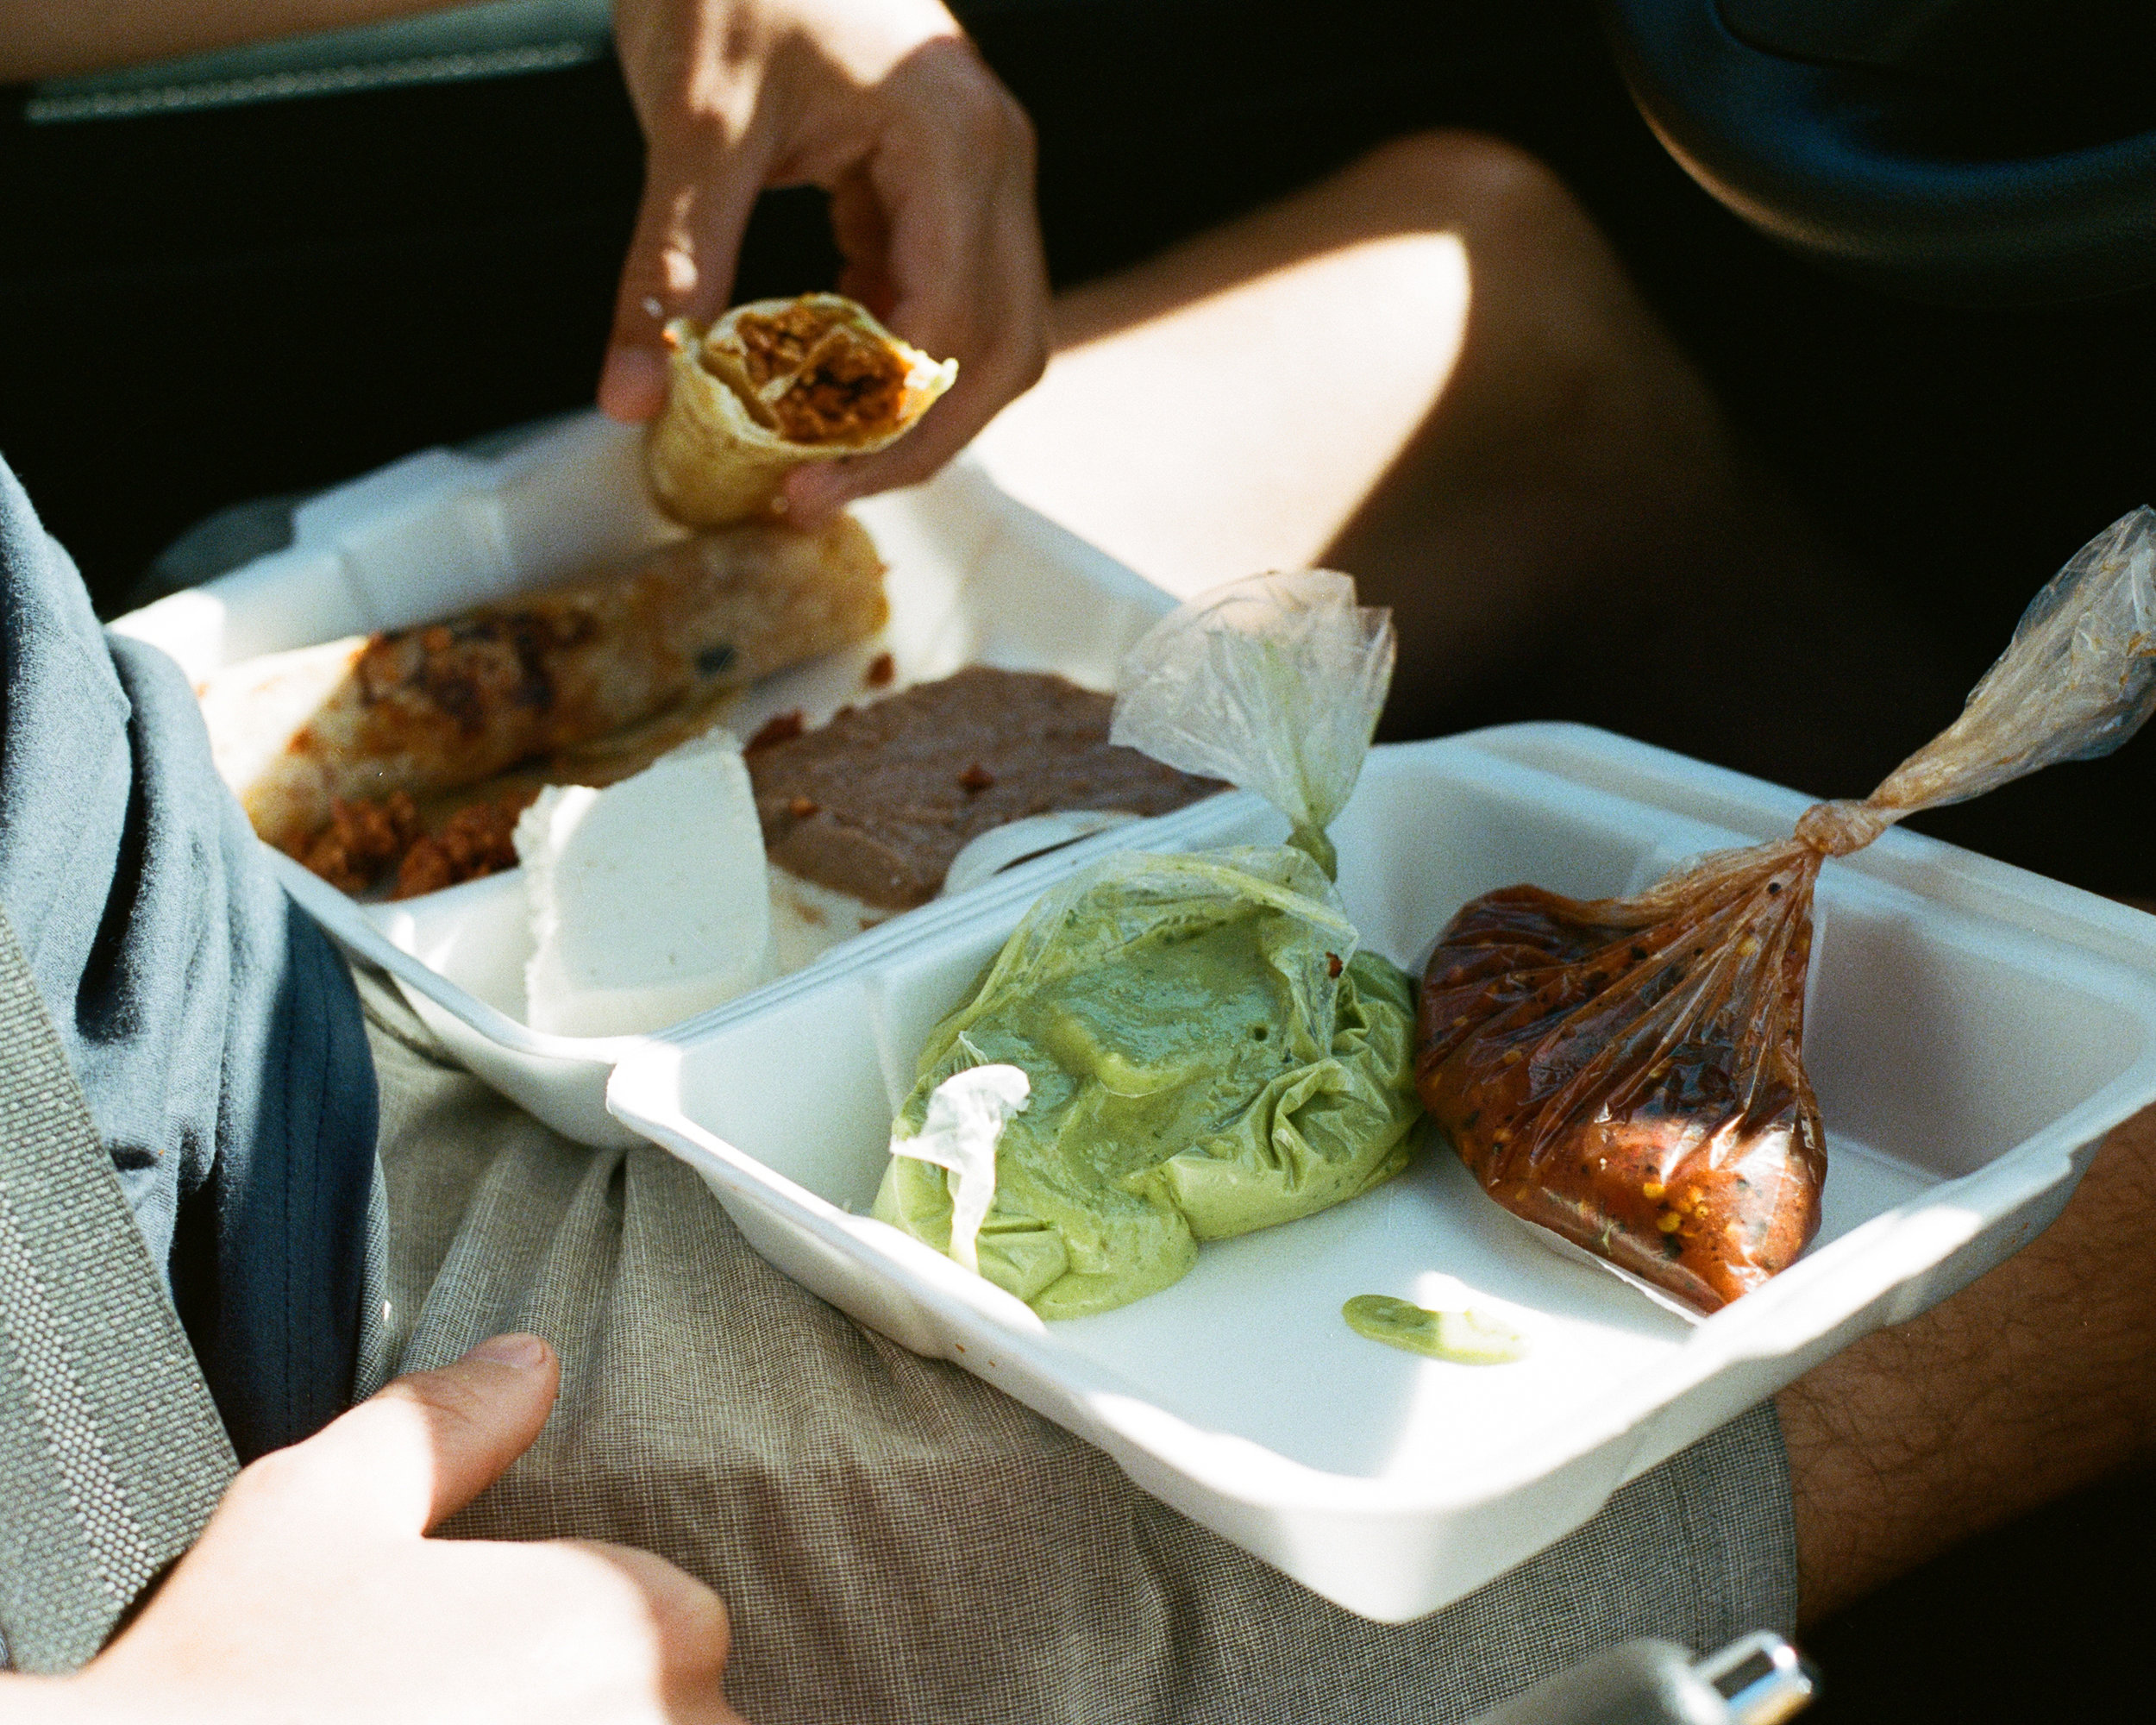 Photograph of Nick Messina eating street tacos in Baja Mexico by photographer Jon Moore, Creative Director at The Beans and Rice